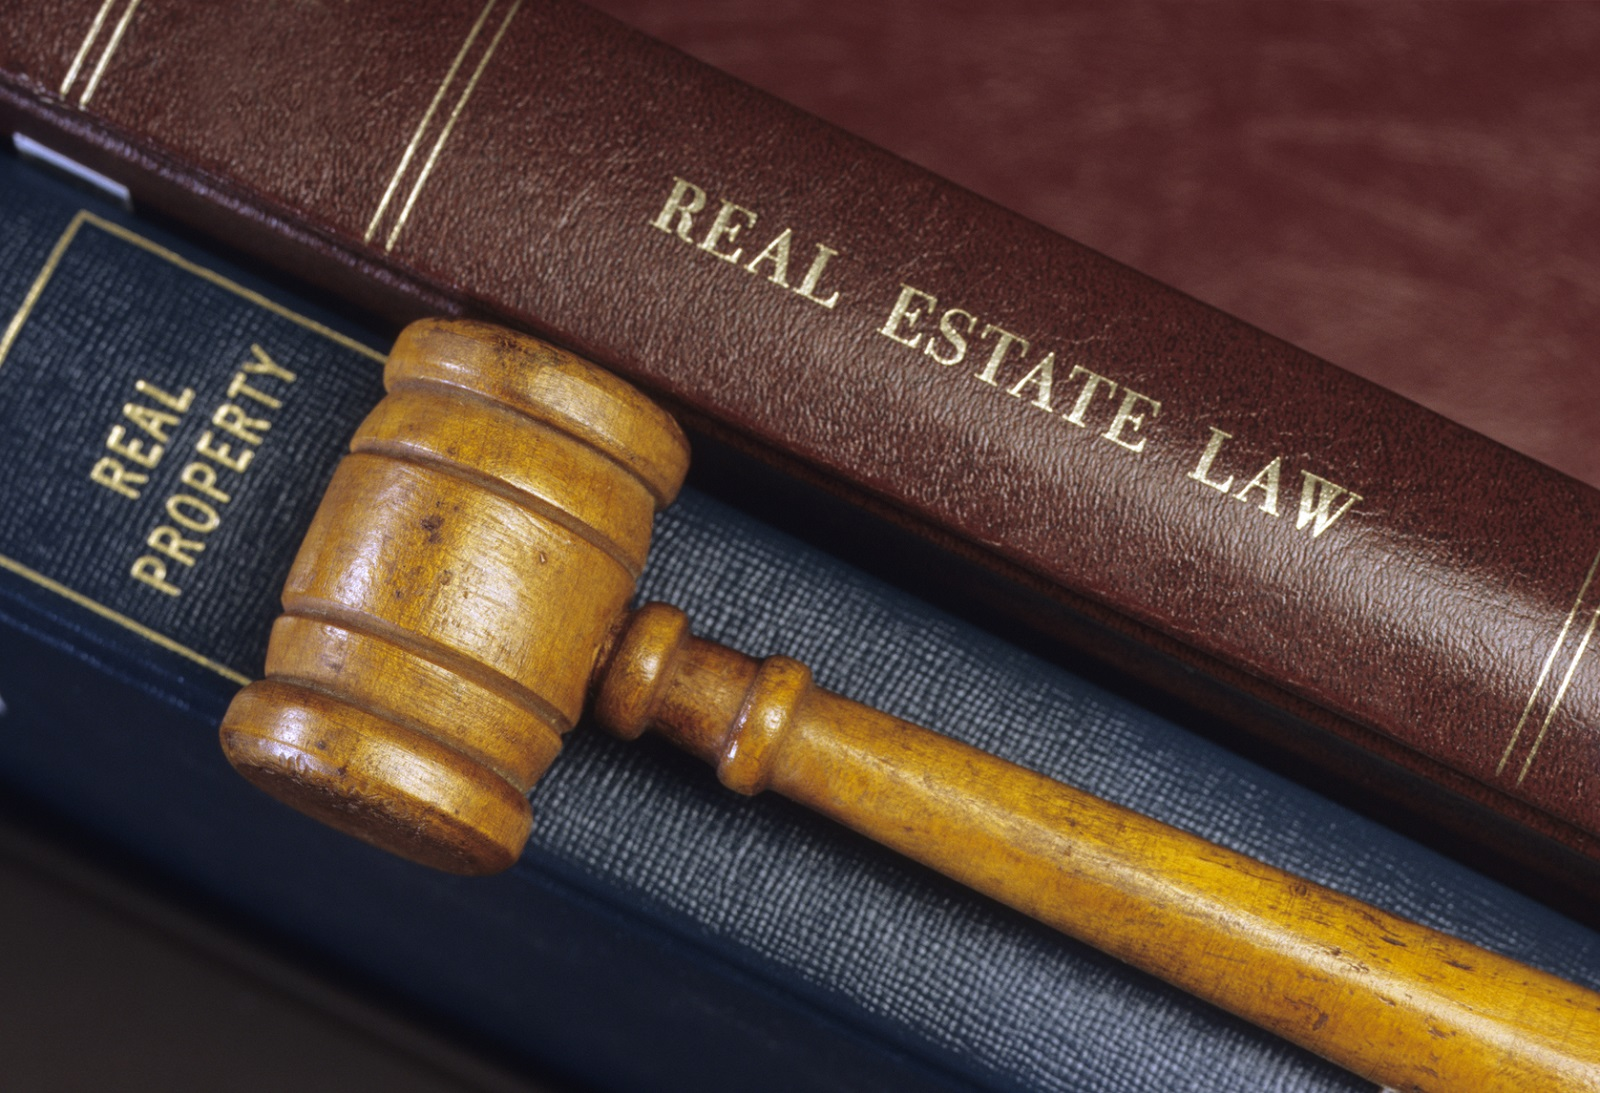 Real Estate Law Books and Gavel | How to Avoid Land Litigation Issues in Ghana